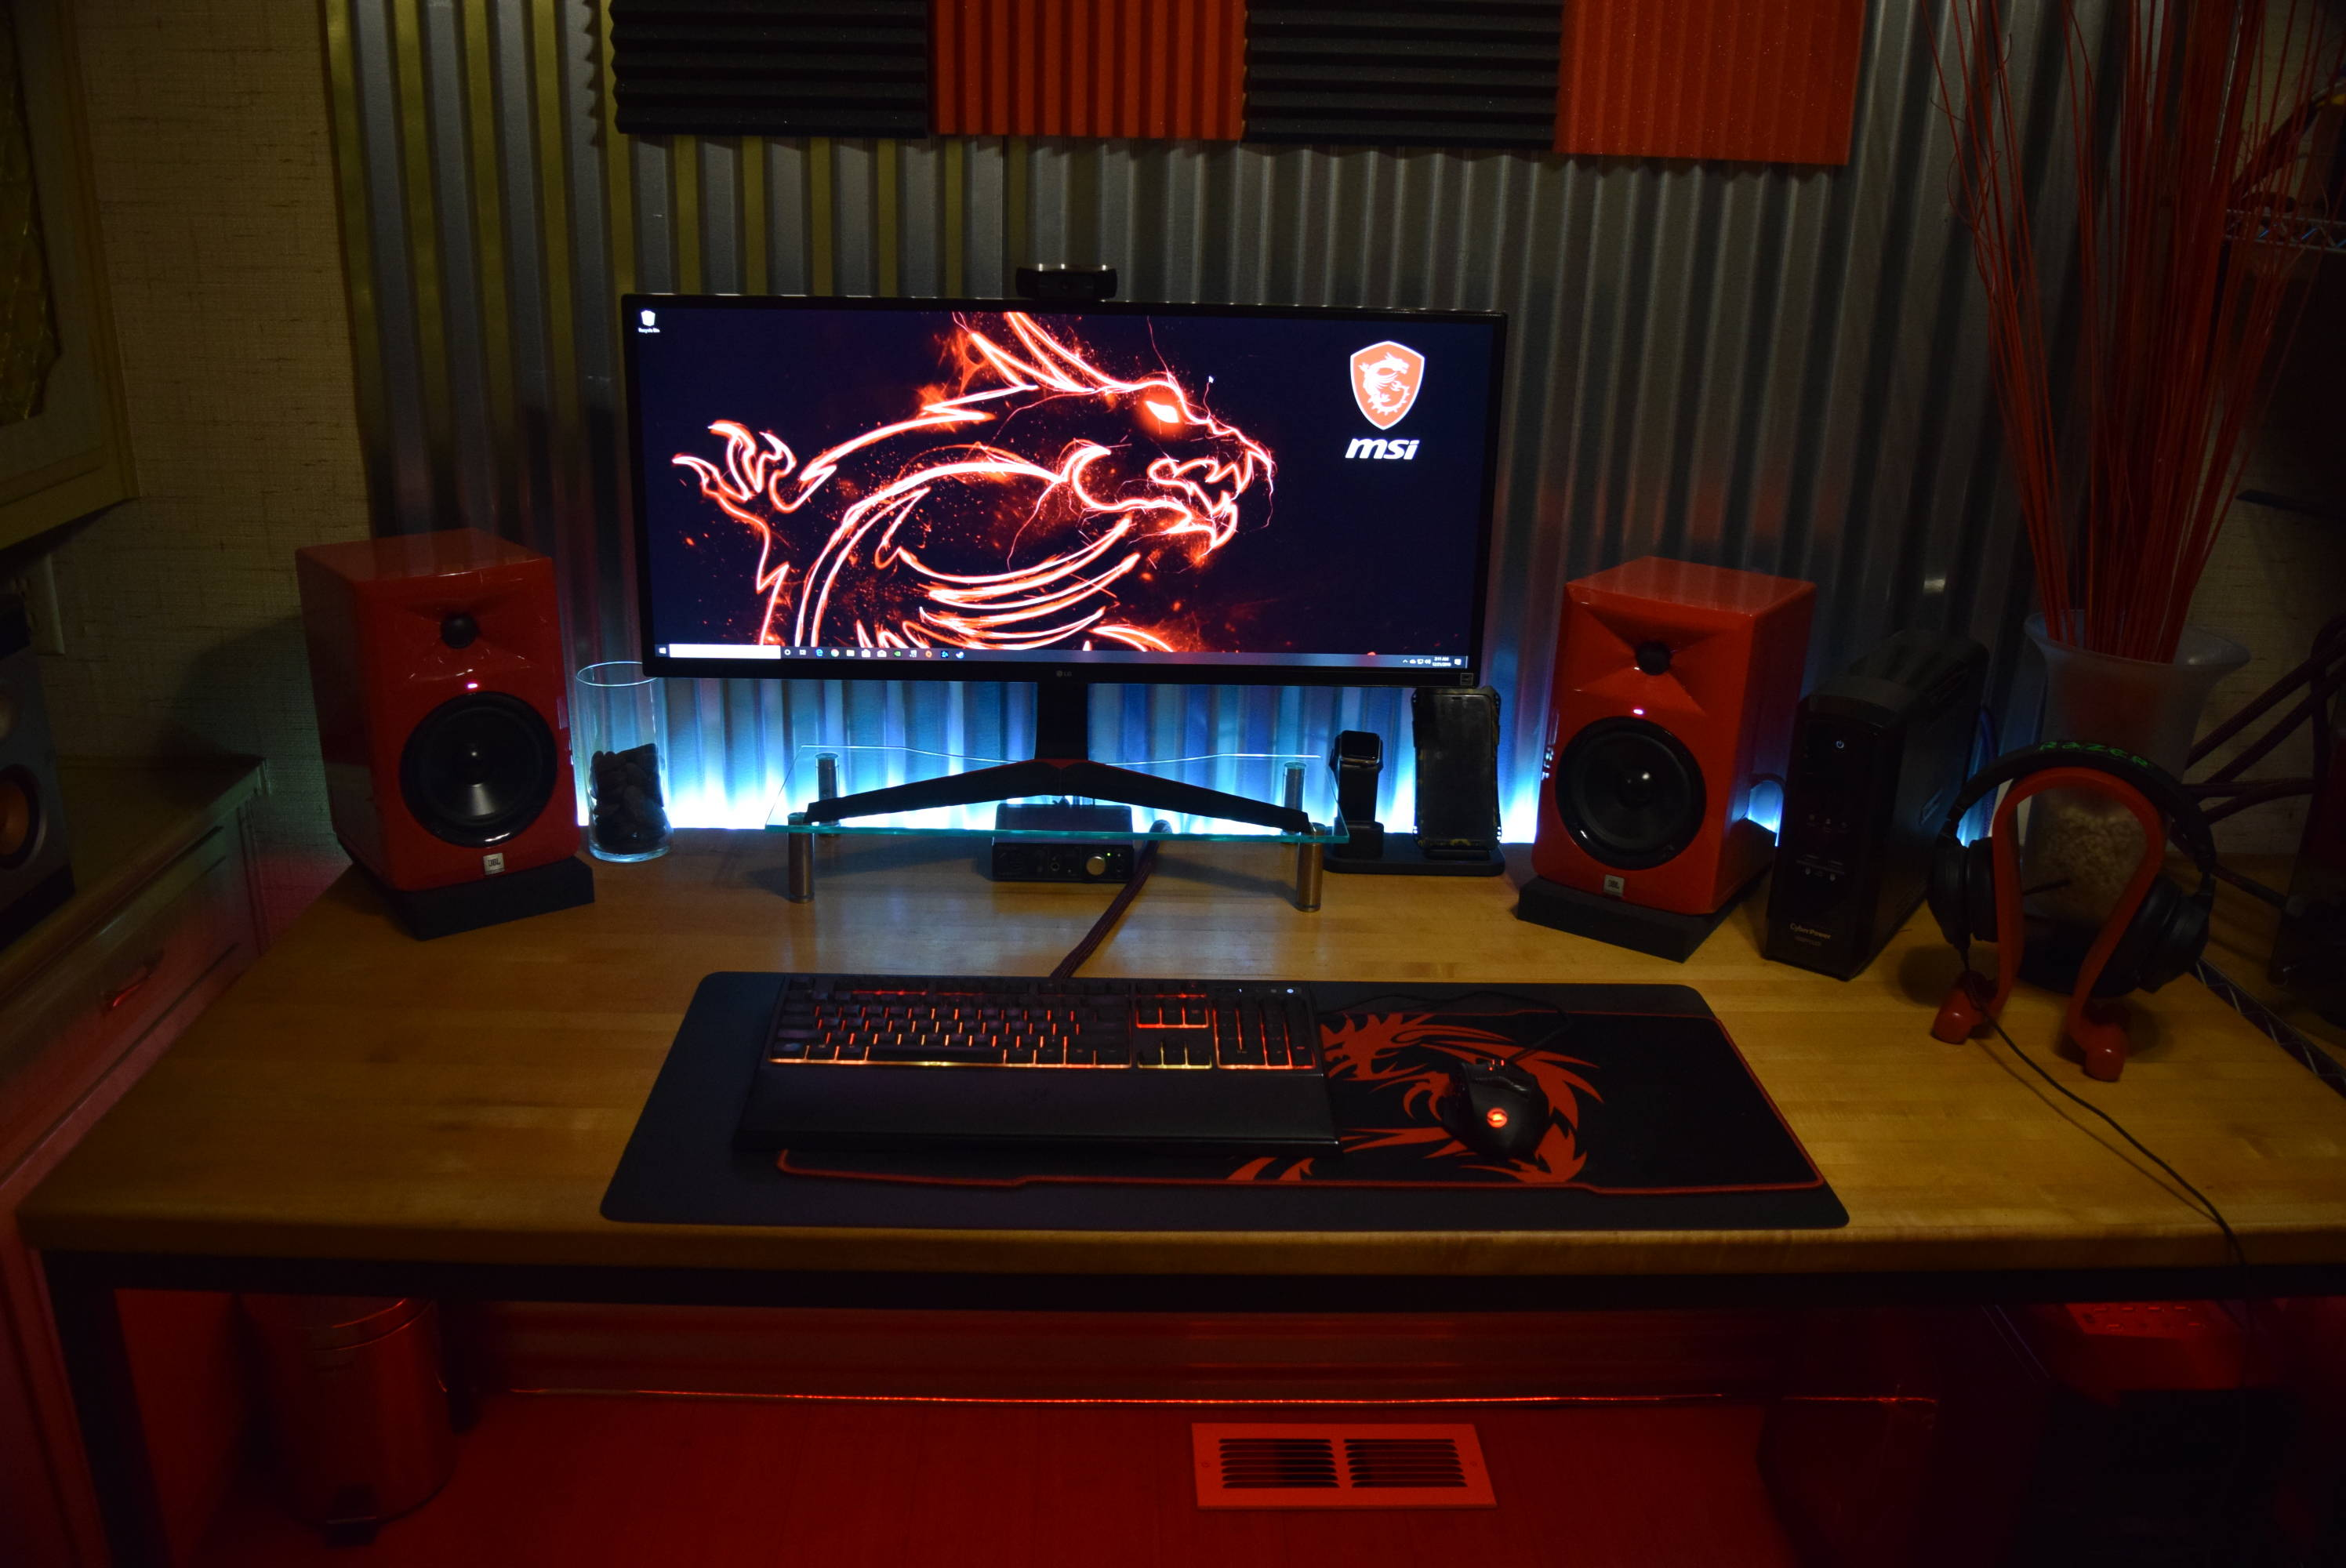 Duuggzzz's Setup - The Big Red | Scooget